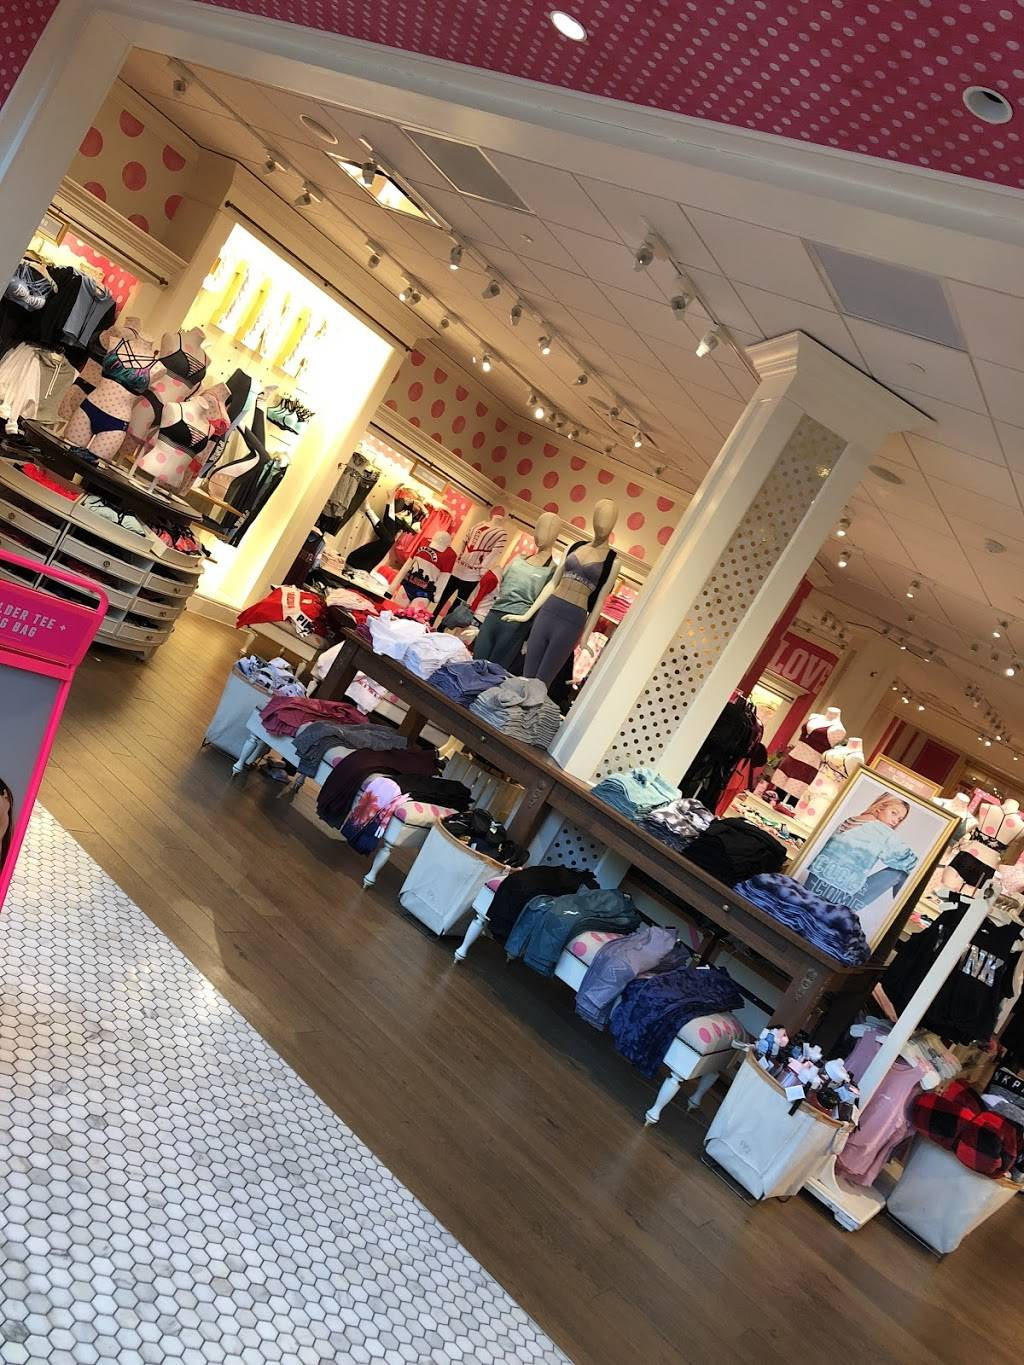 Victorias Secret PINK - clothing store  | Photo 5 of 5 | Address: 2158 St Louis Galleria St, St. Louis, MO 63117, USA | Phone: (314) 862-2108